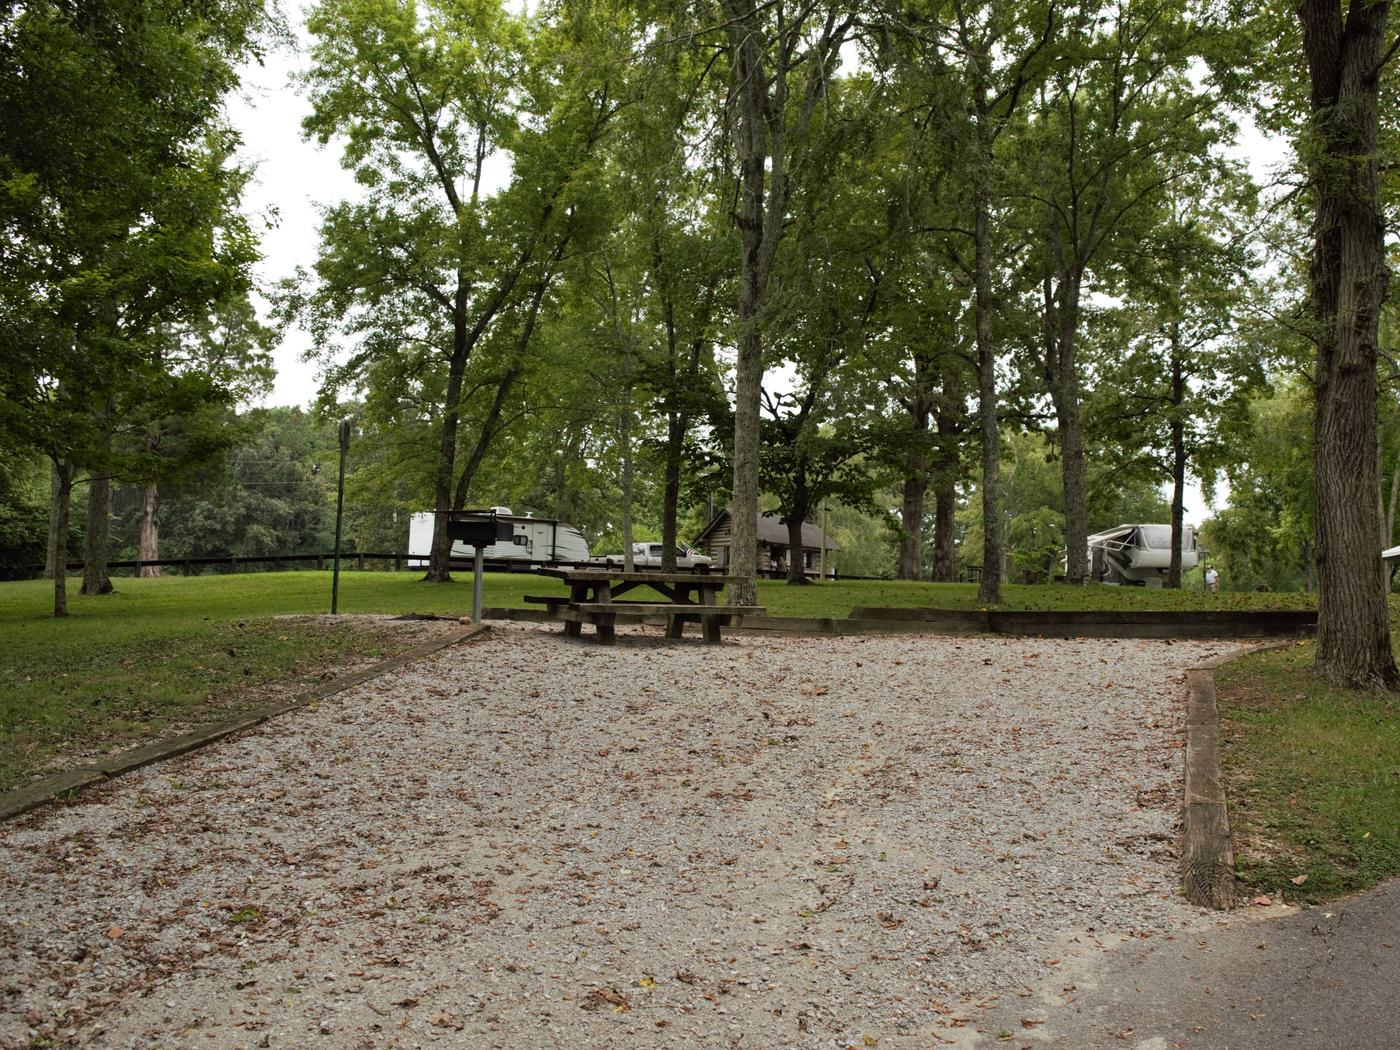 WILLOW GROVE CAMPGROUND SITE # 6